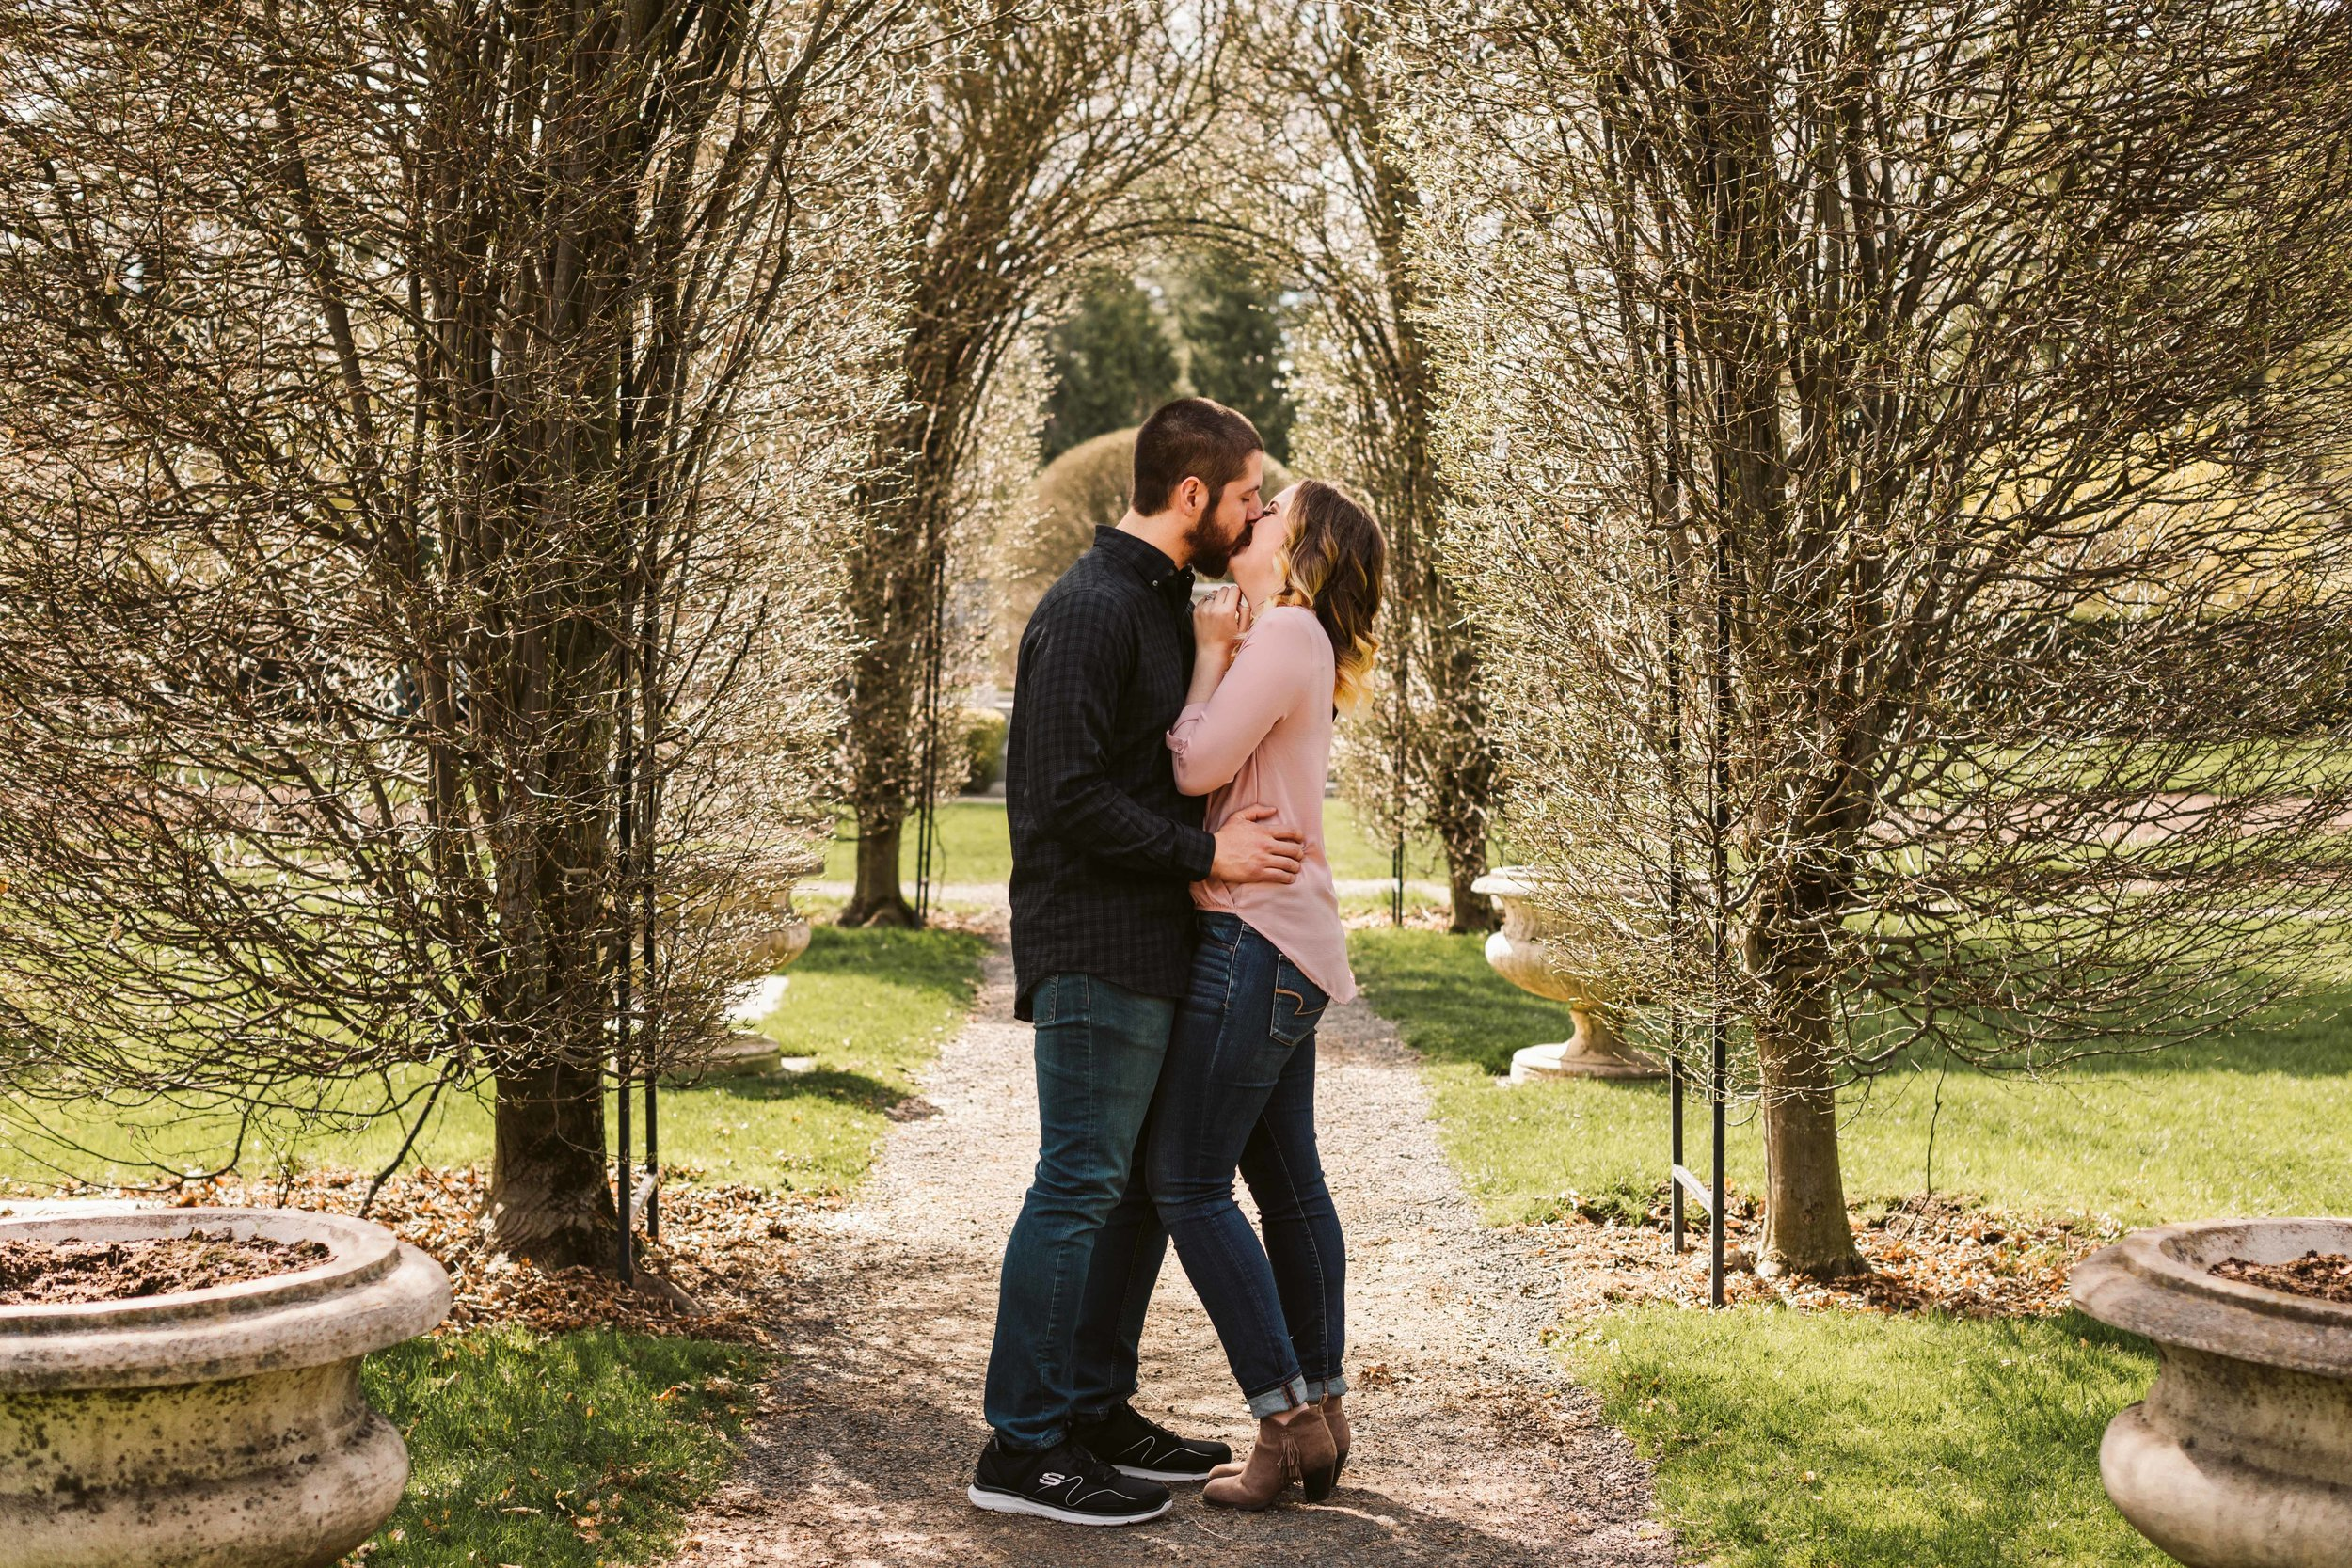 spokane-engagement-photographer-26.jpg